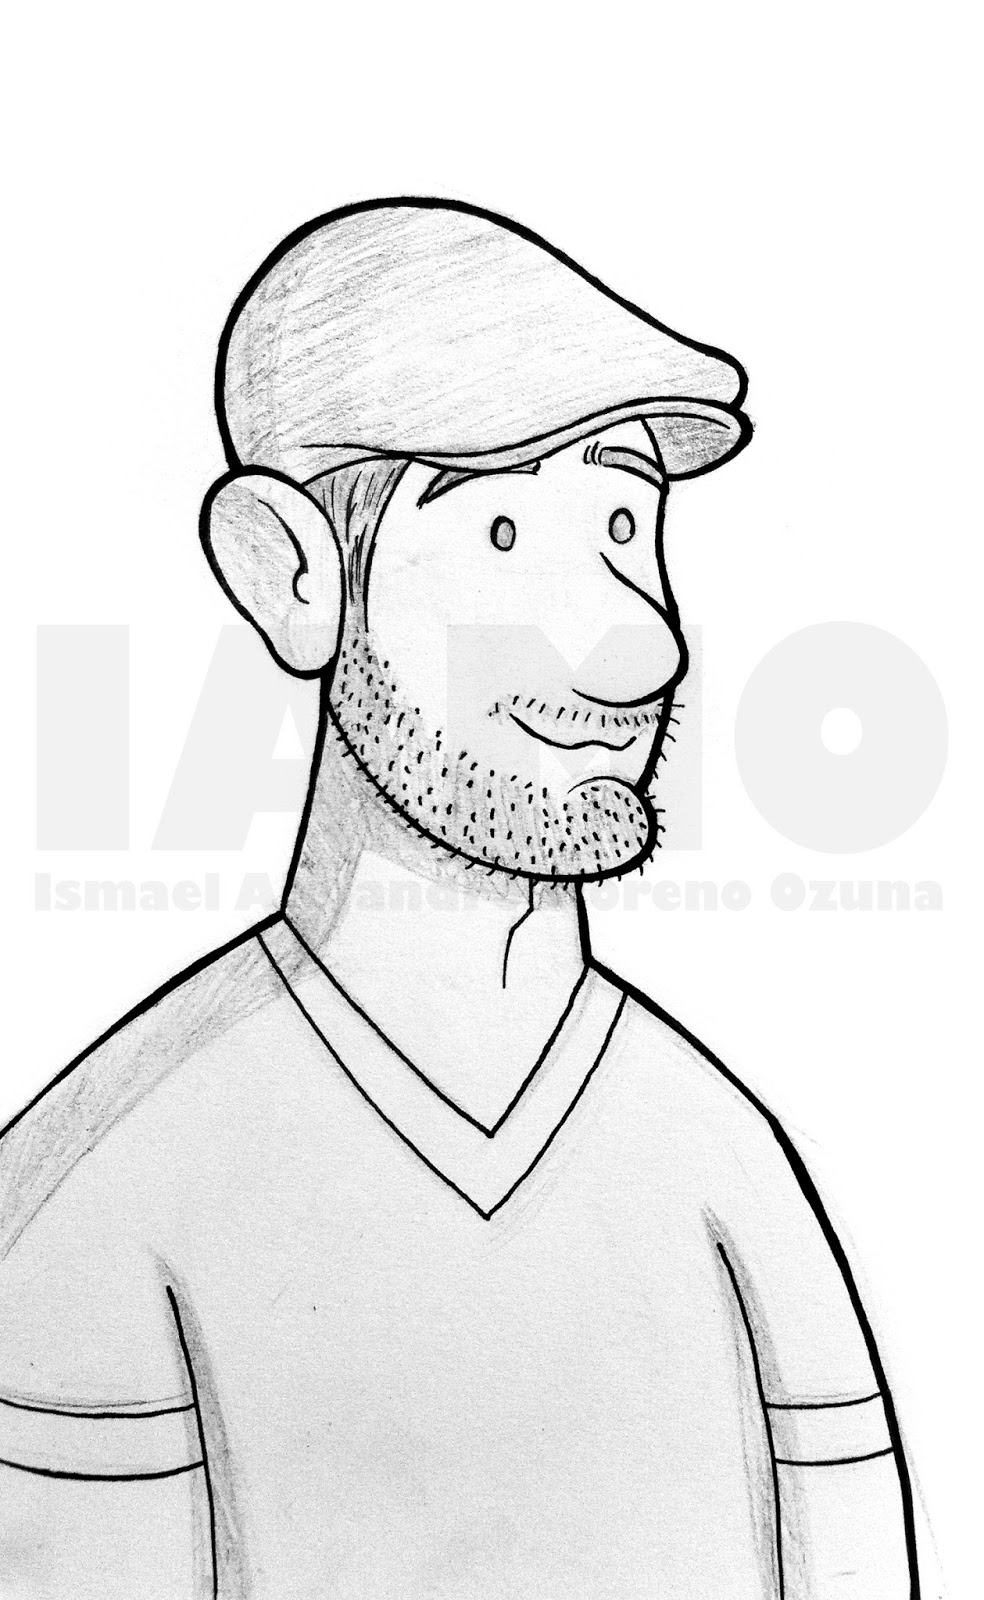 iamo-stephen-silver-cartoon-portrait-.jpg